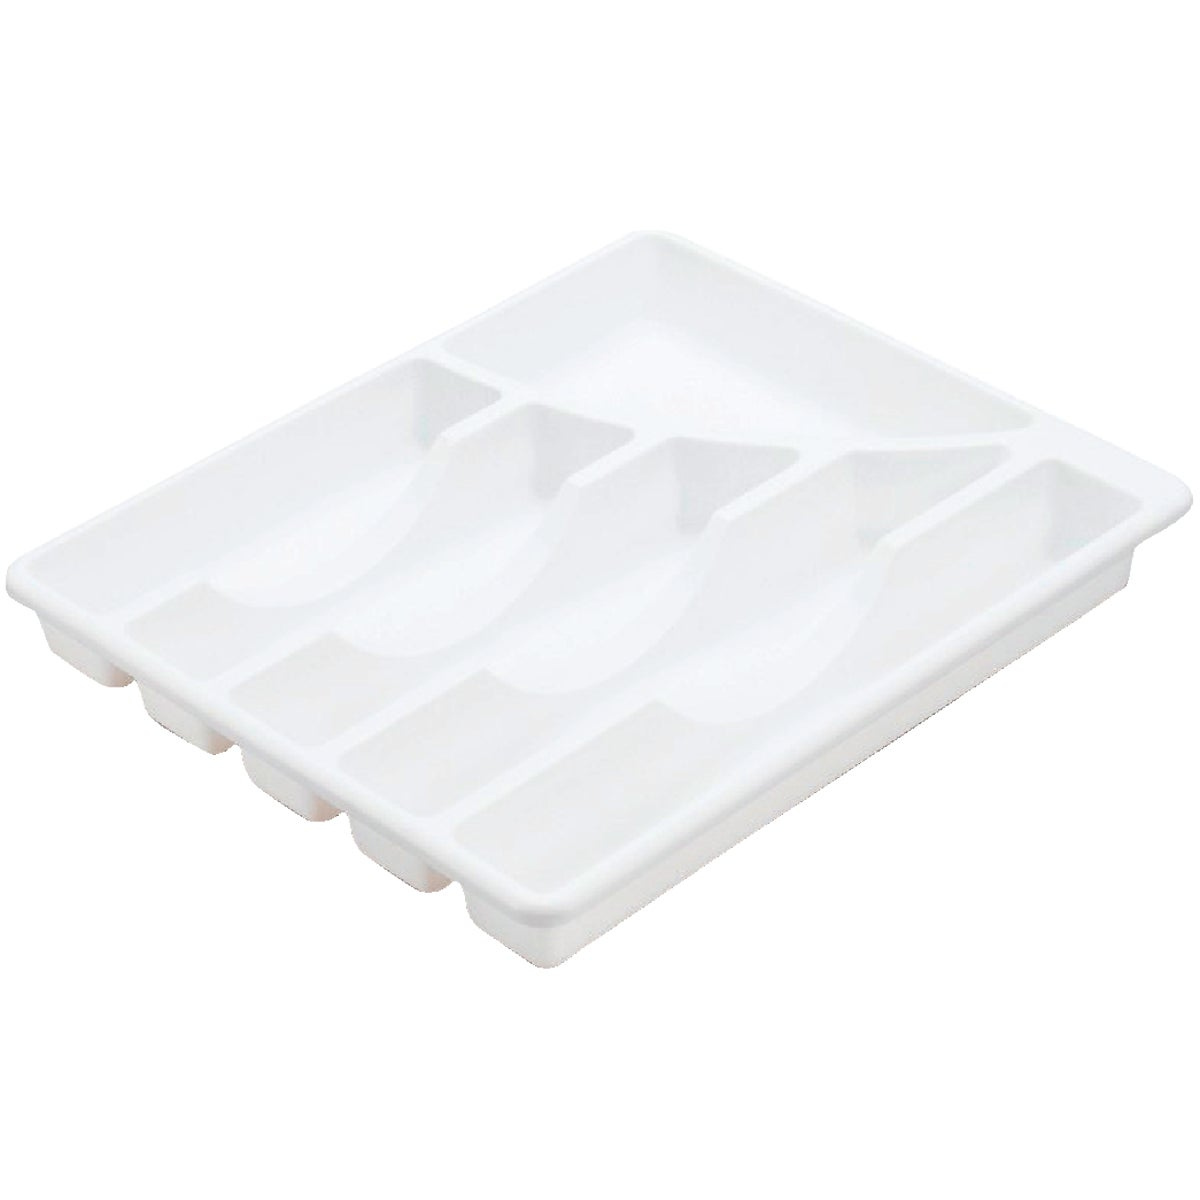 WHITE CUTLERY TRAY